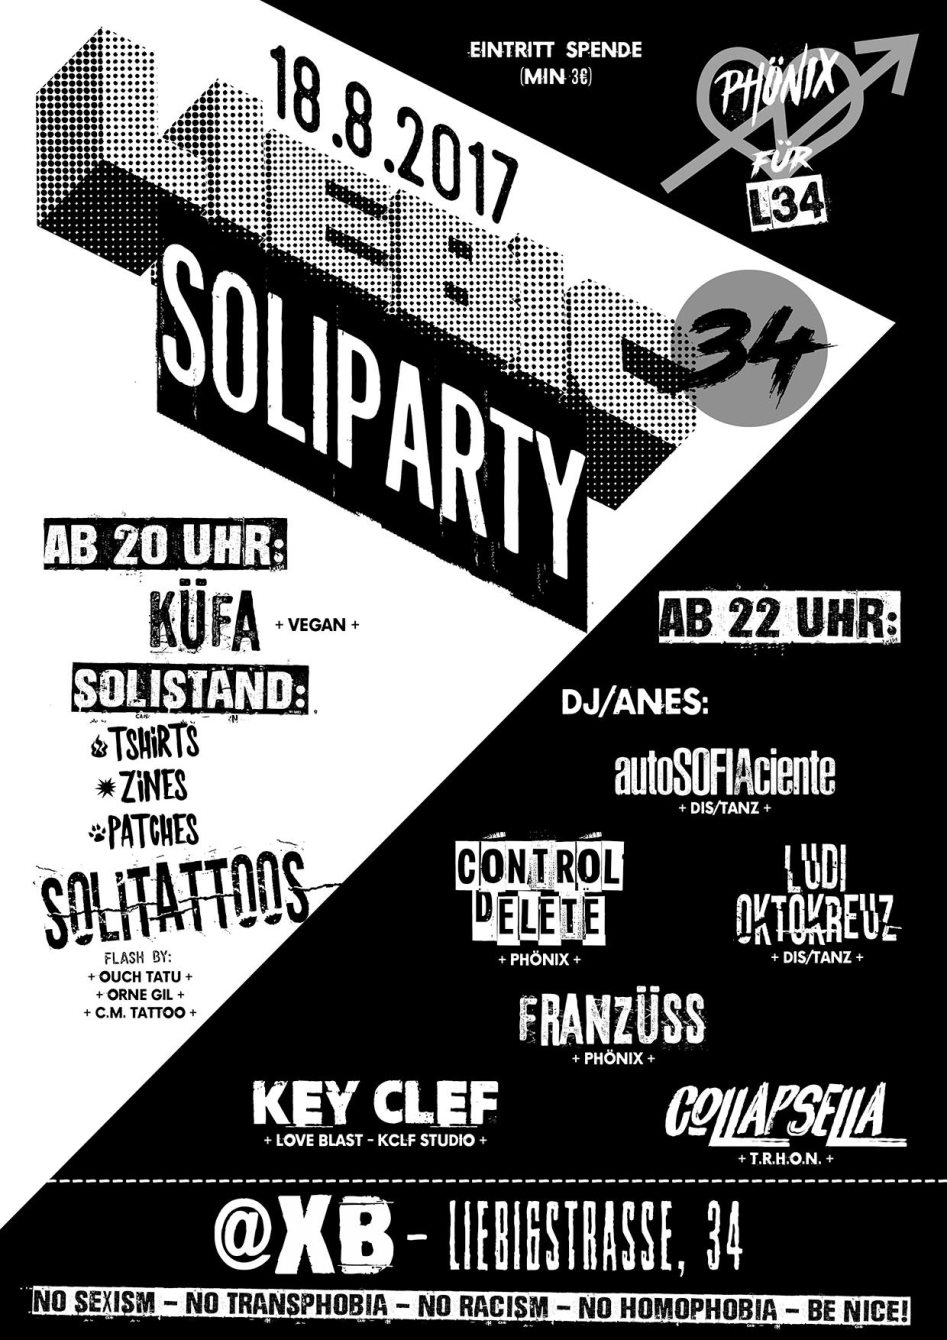 liebig 34 soli party